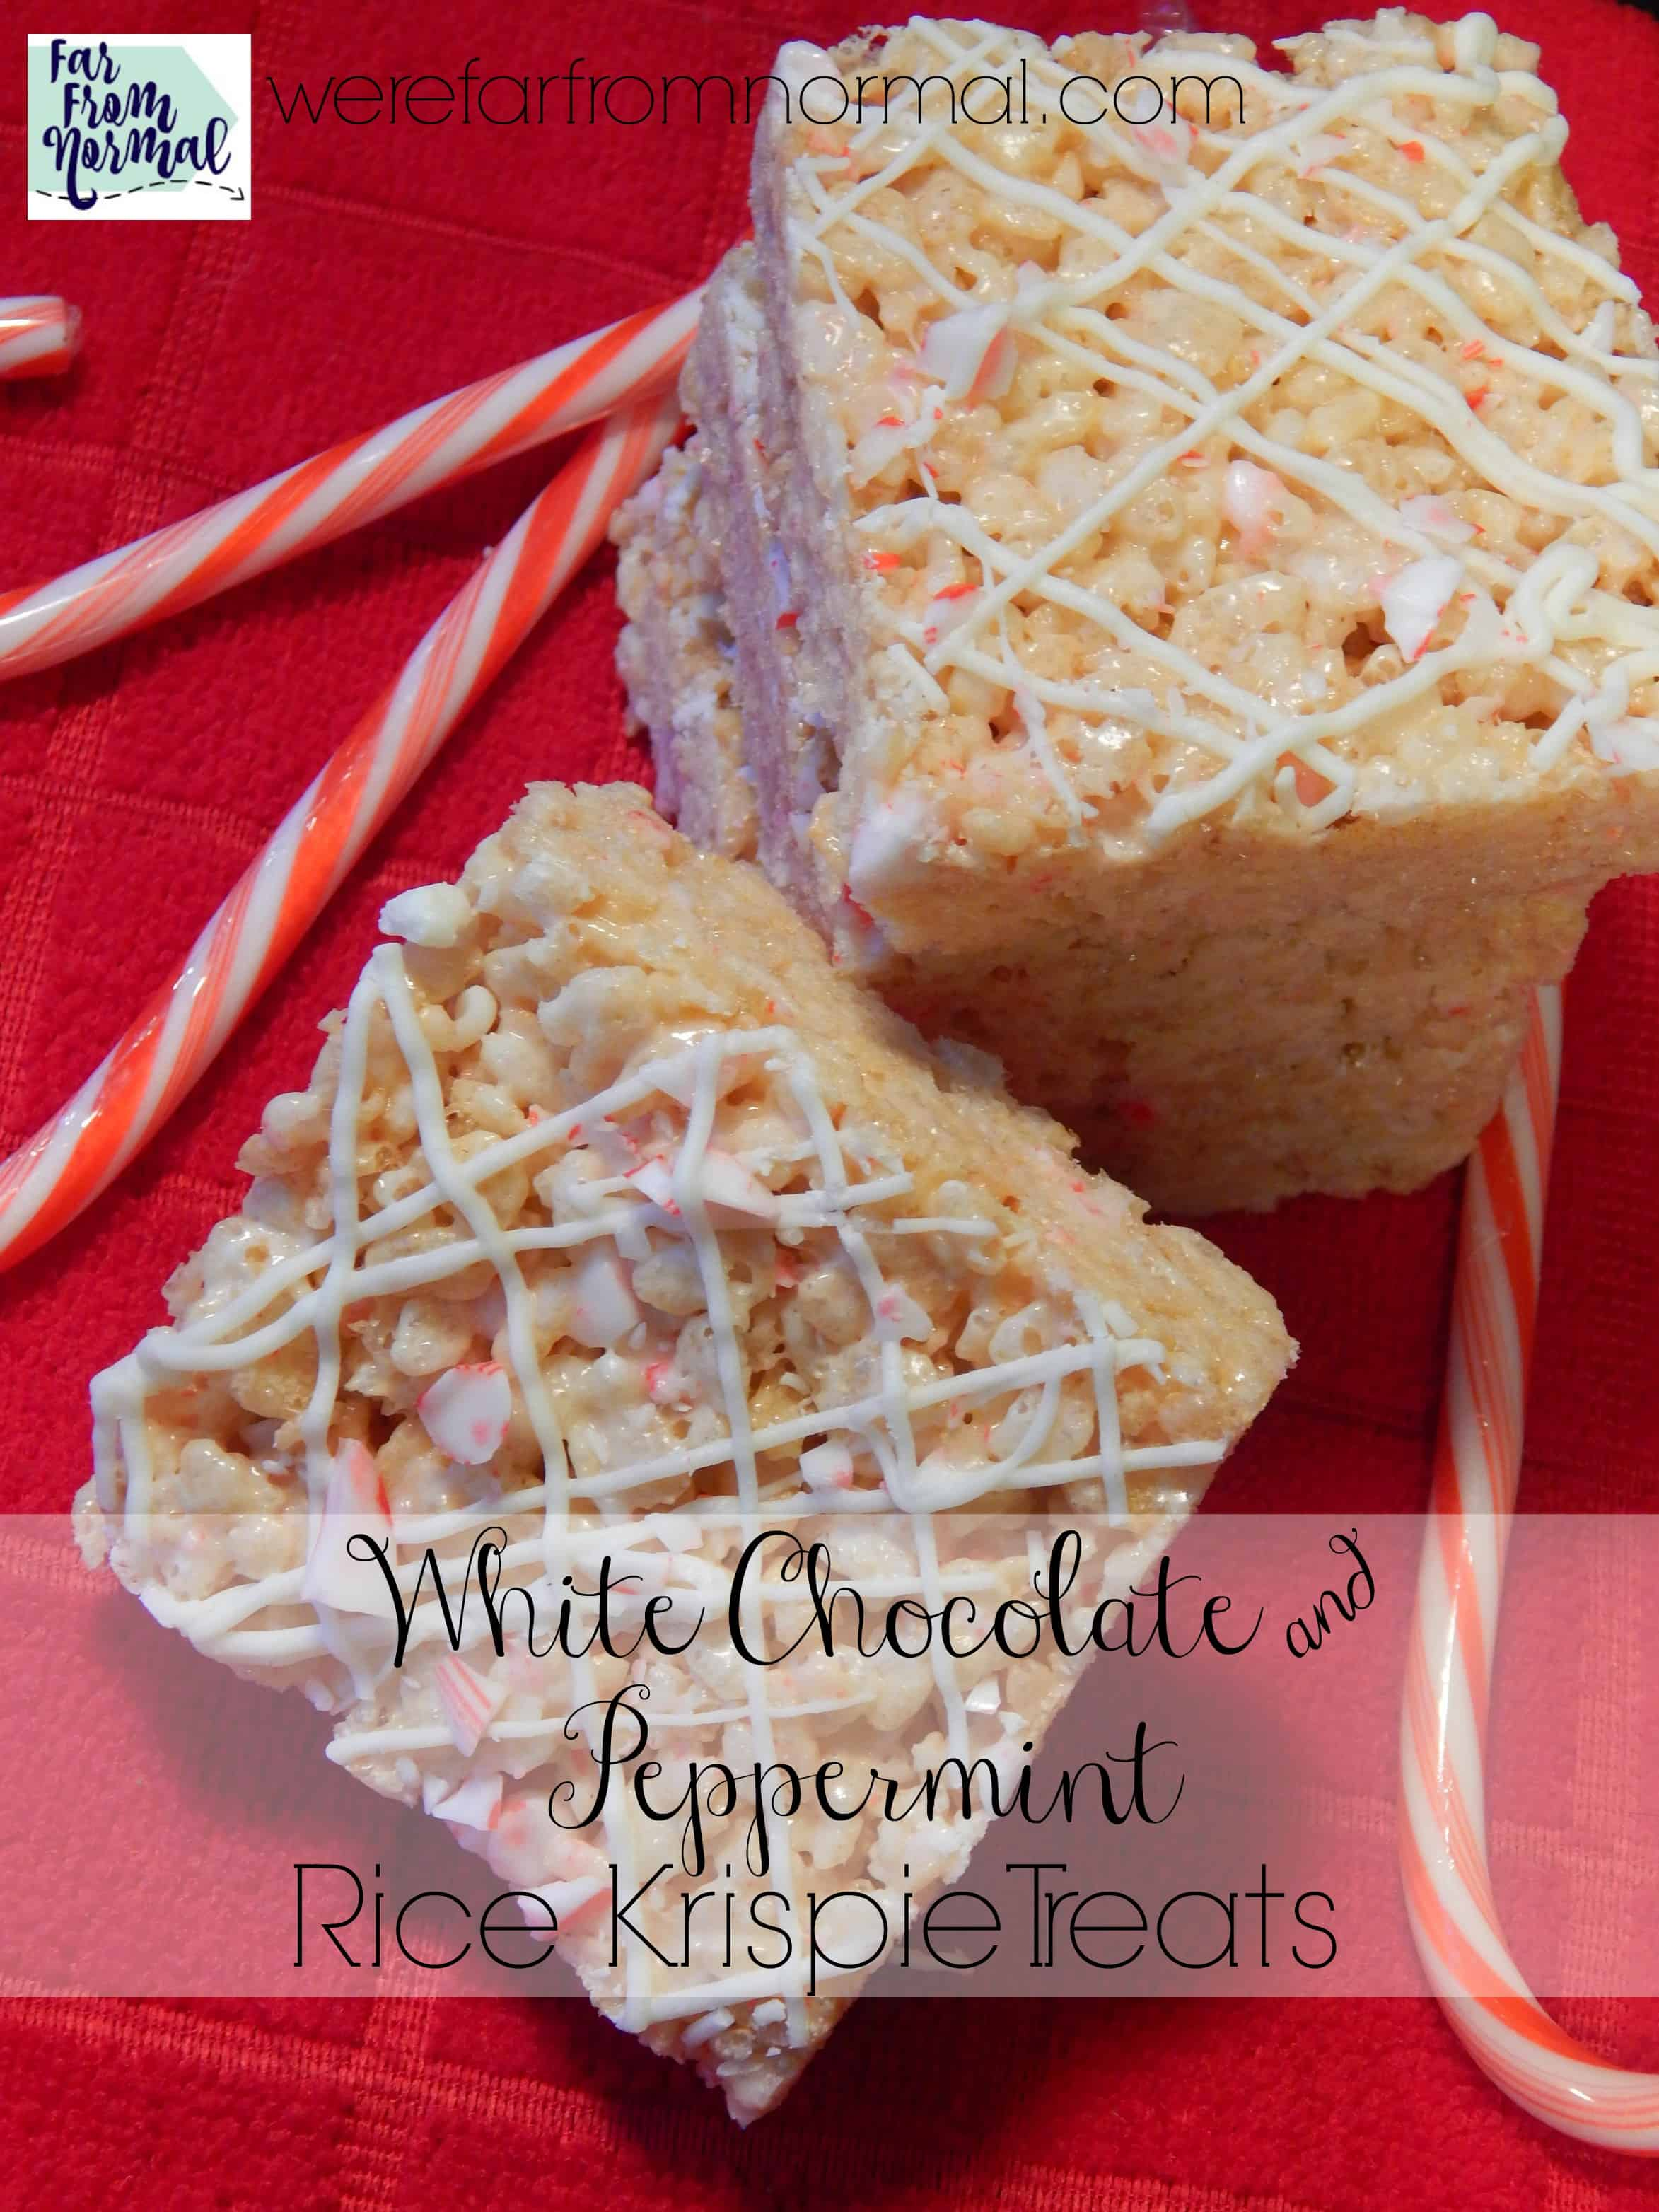 Delicious White Chocolate & Peppermint Rice Krispie Treats